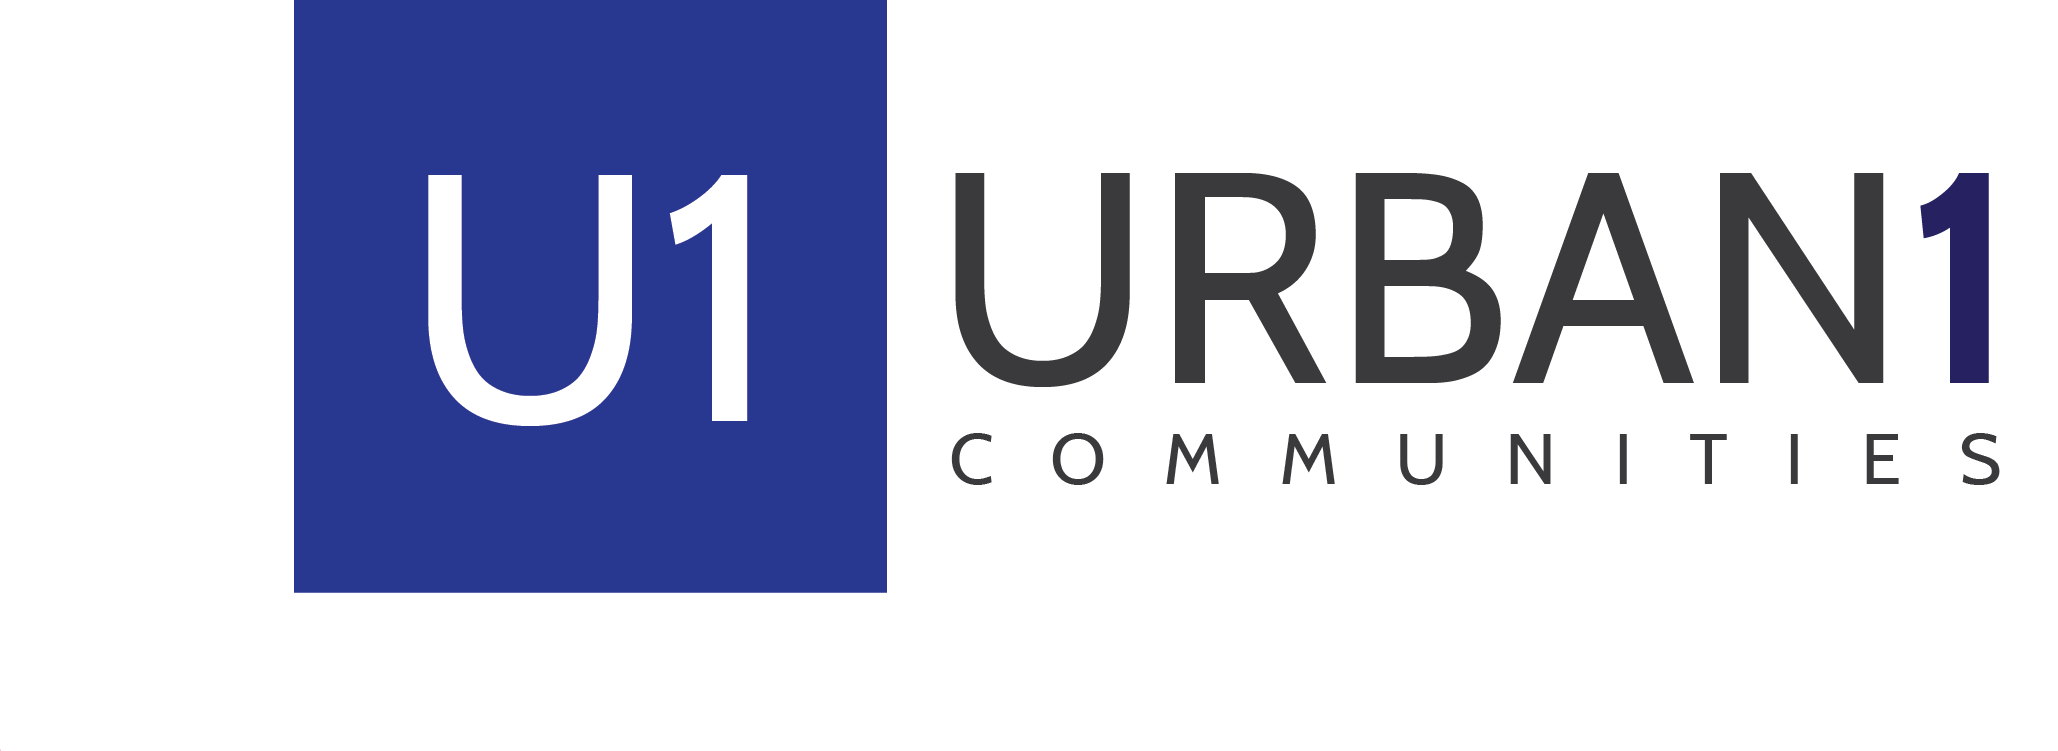 Urban1 Communities Logo - Final.png